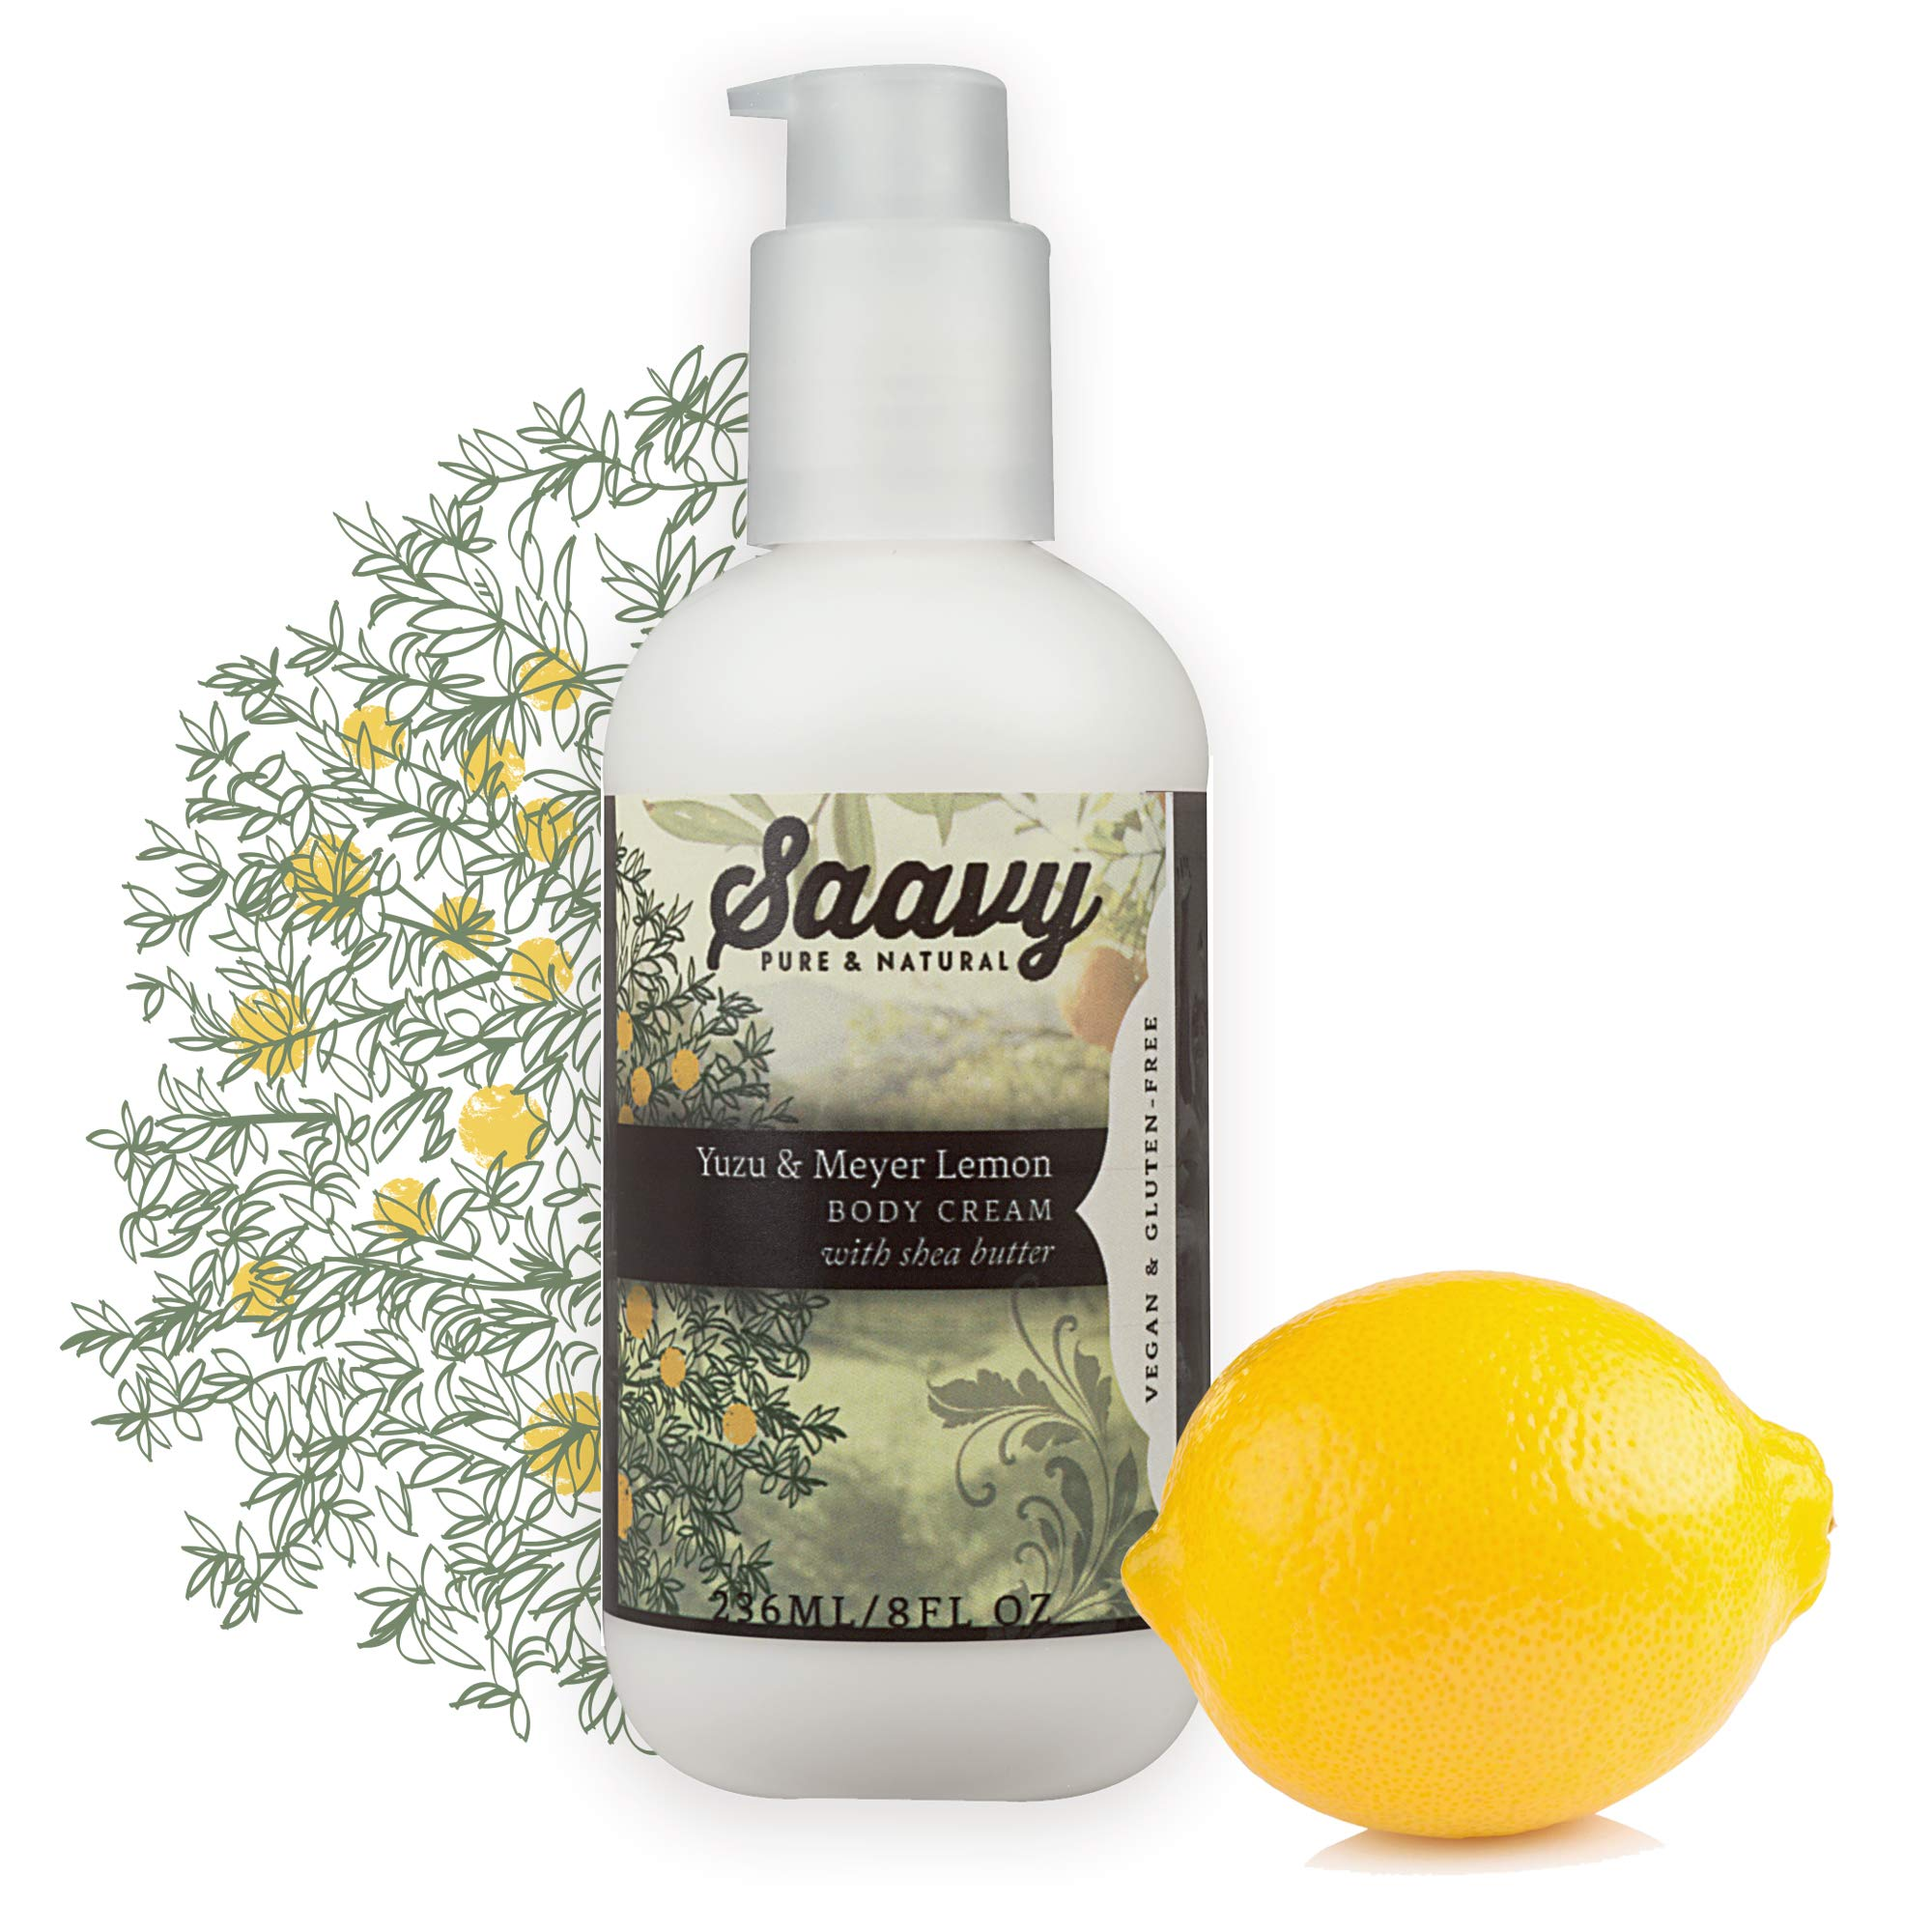 Yuzu & Meyer Lemon Body Cream | All-Natural Moisturizer | Vegan & Gluten Free Skin Care | 8 oz by Saavy Naturals